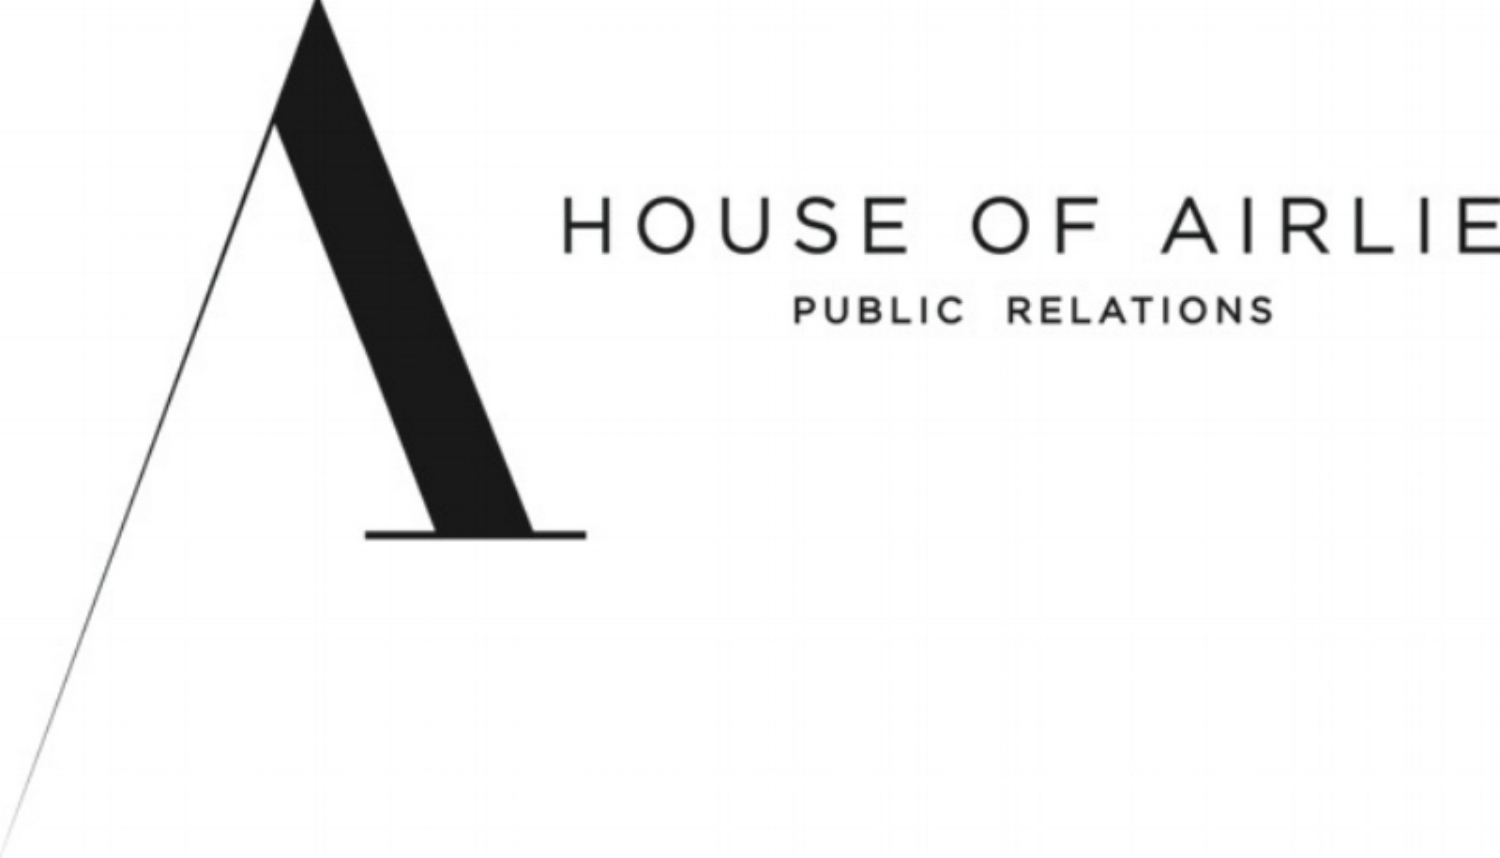 House of Airlie Public Relations